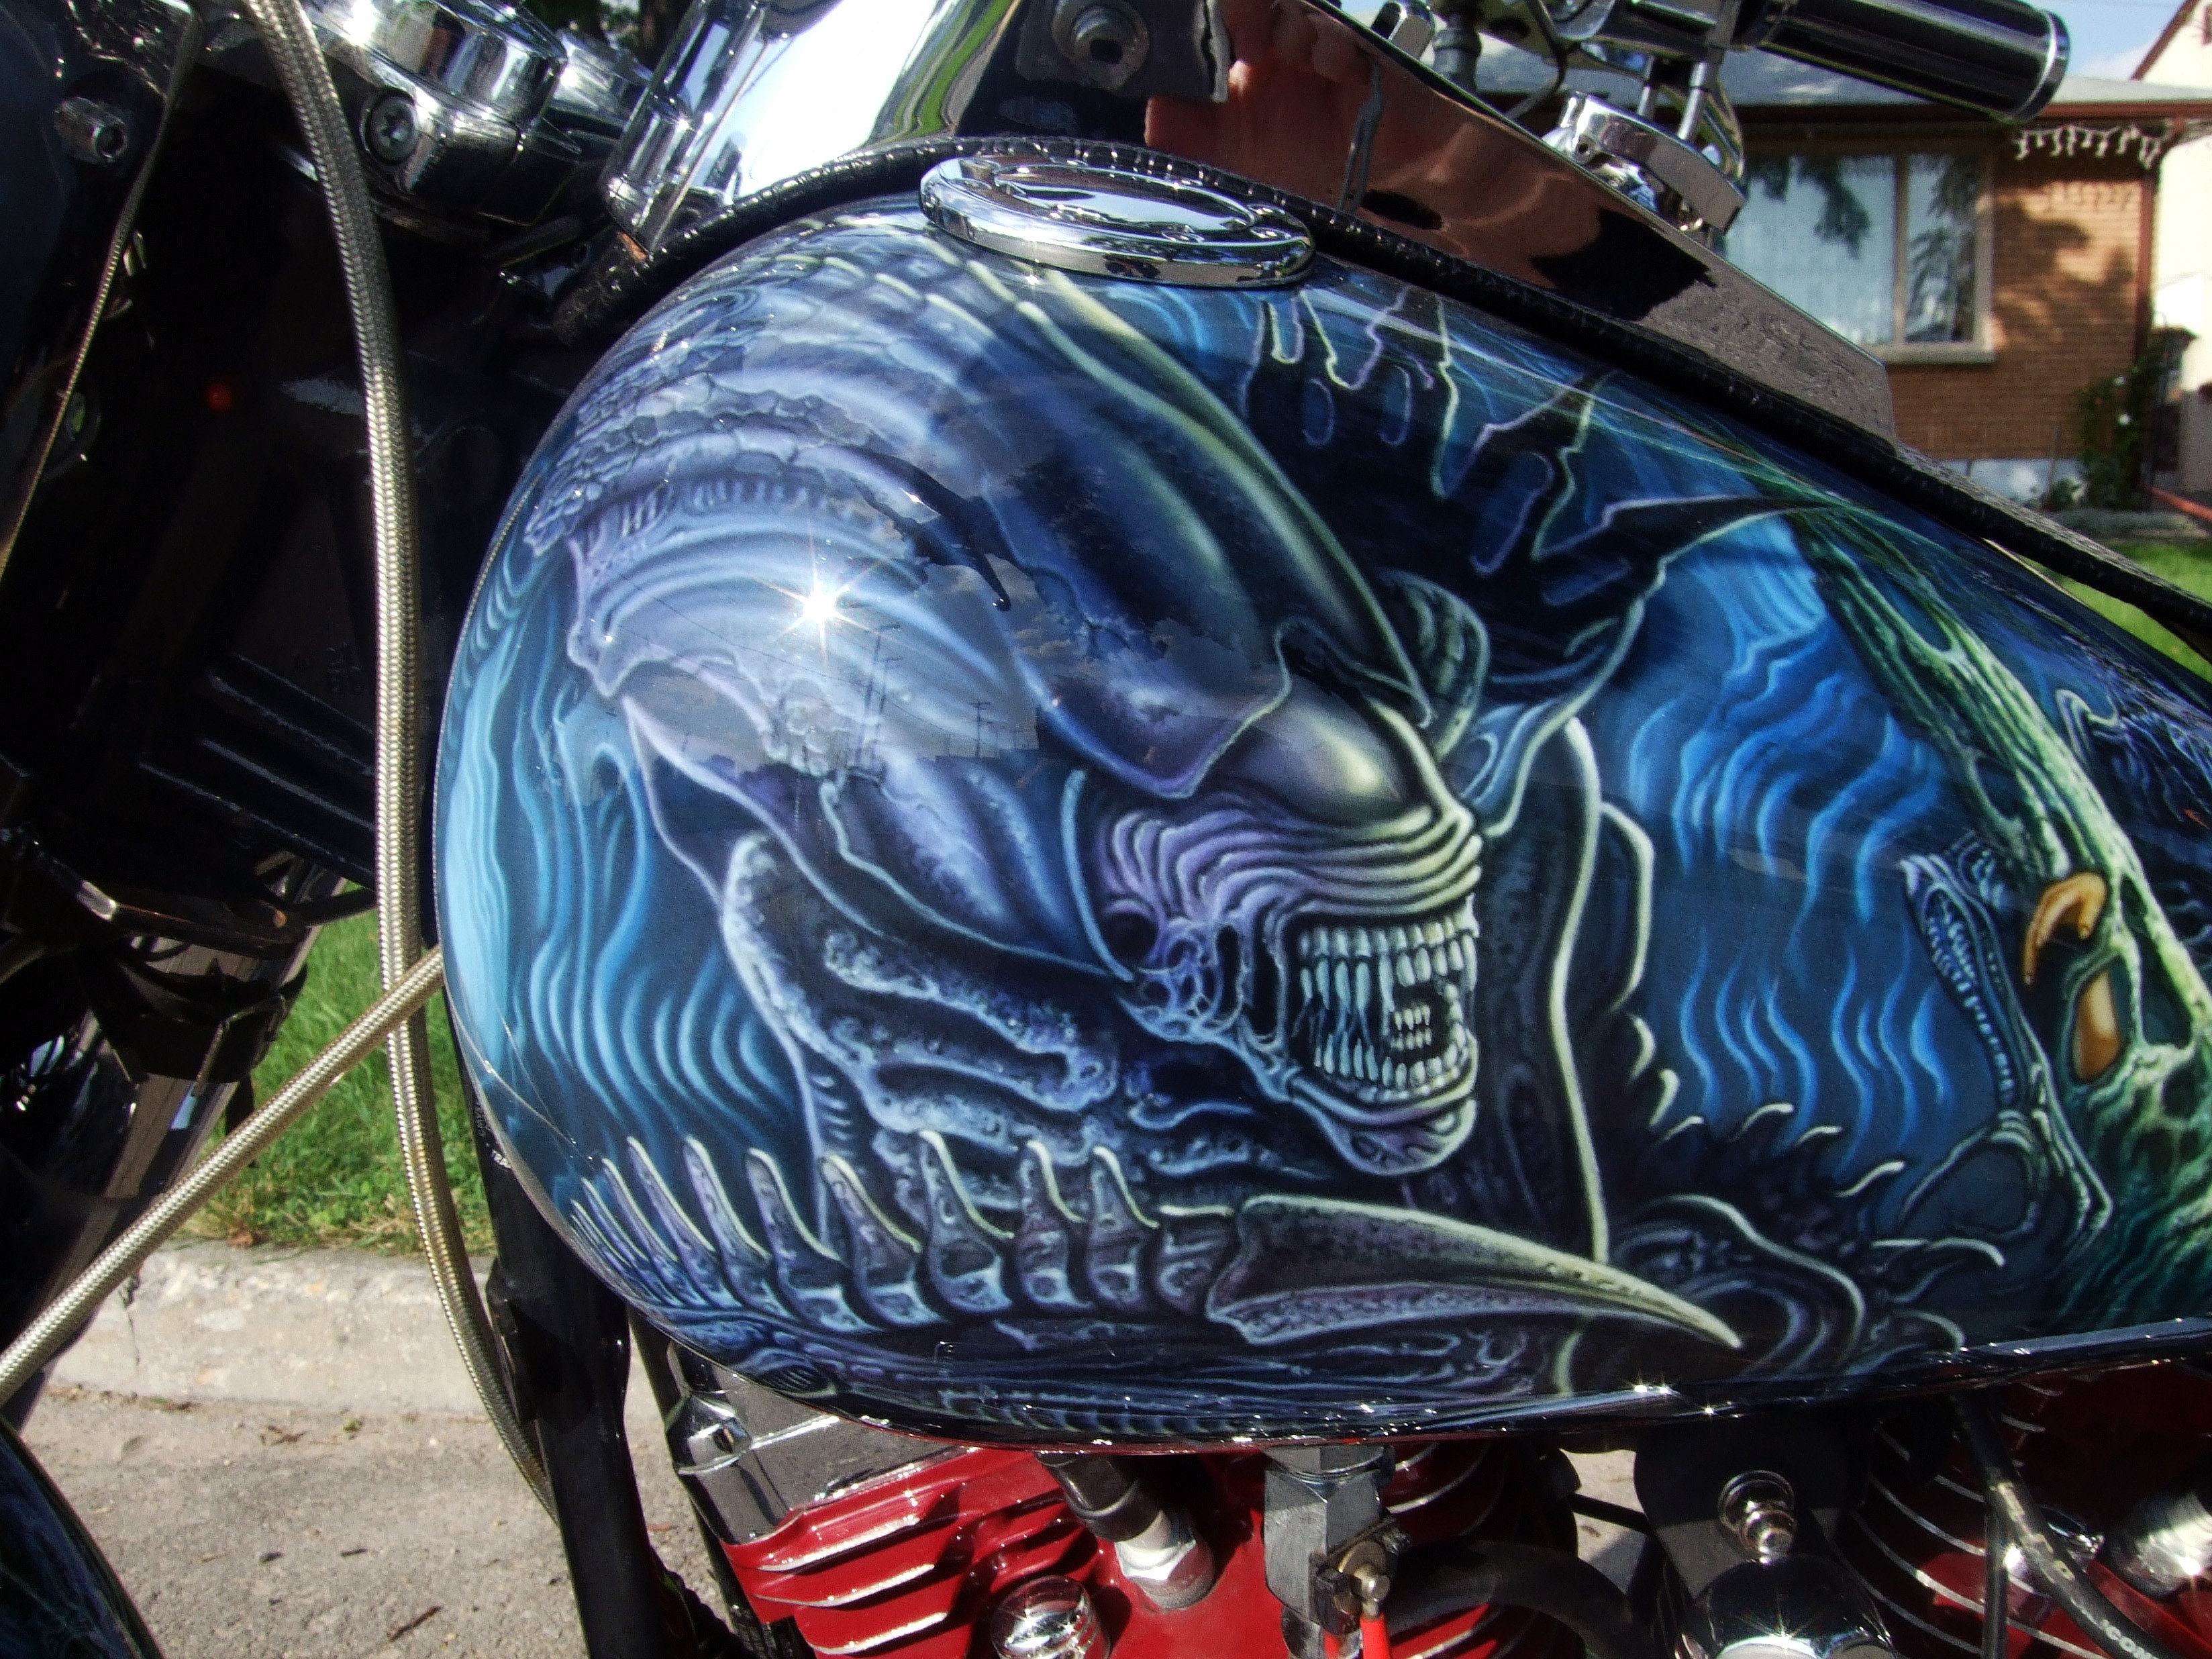 Uncle Ds Airbrushing And Design Studio